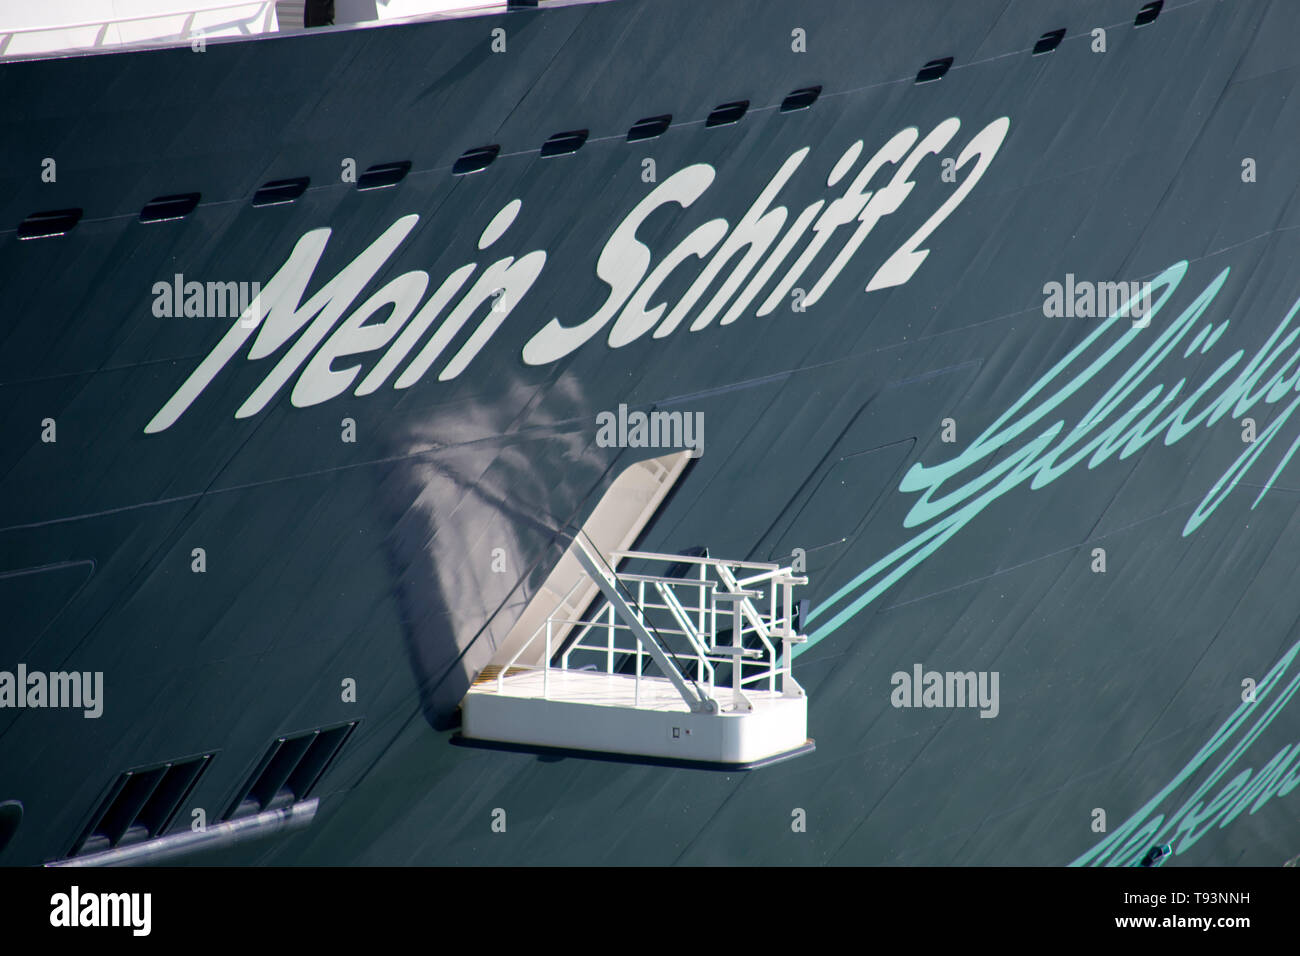 Auxiliary gate for the maneuver of the tourist cruise Mein Schiff 2 - Stock Image